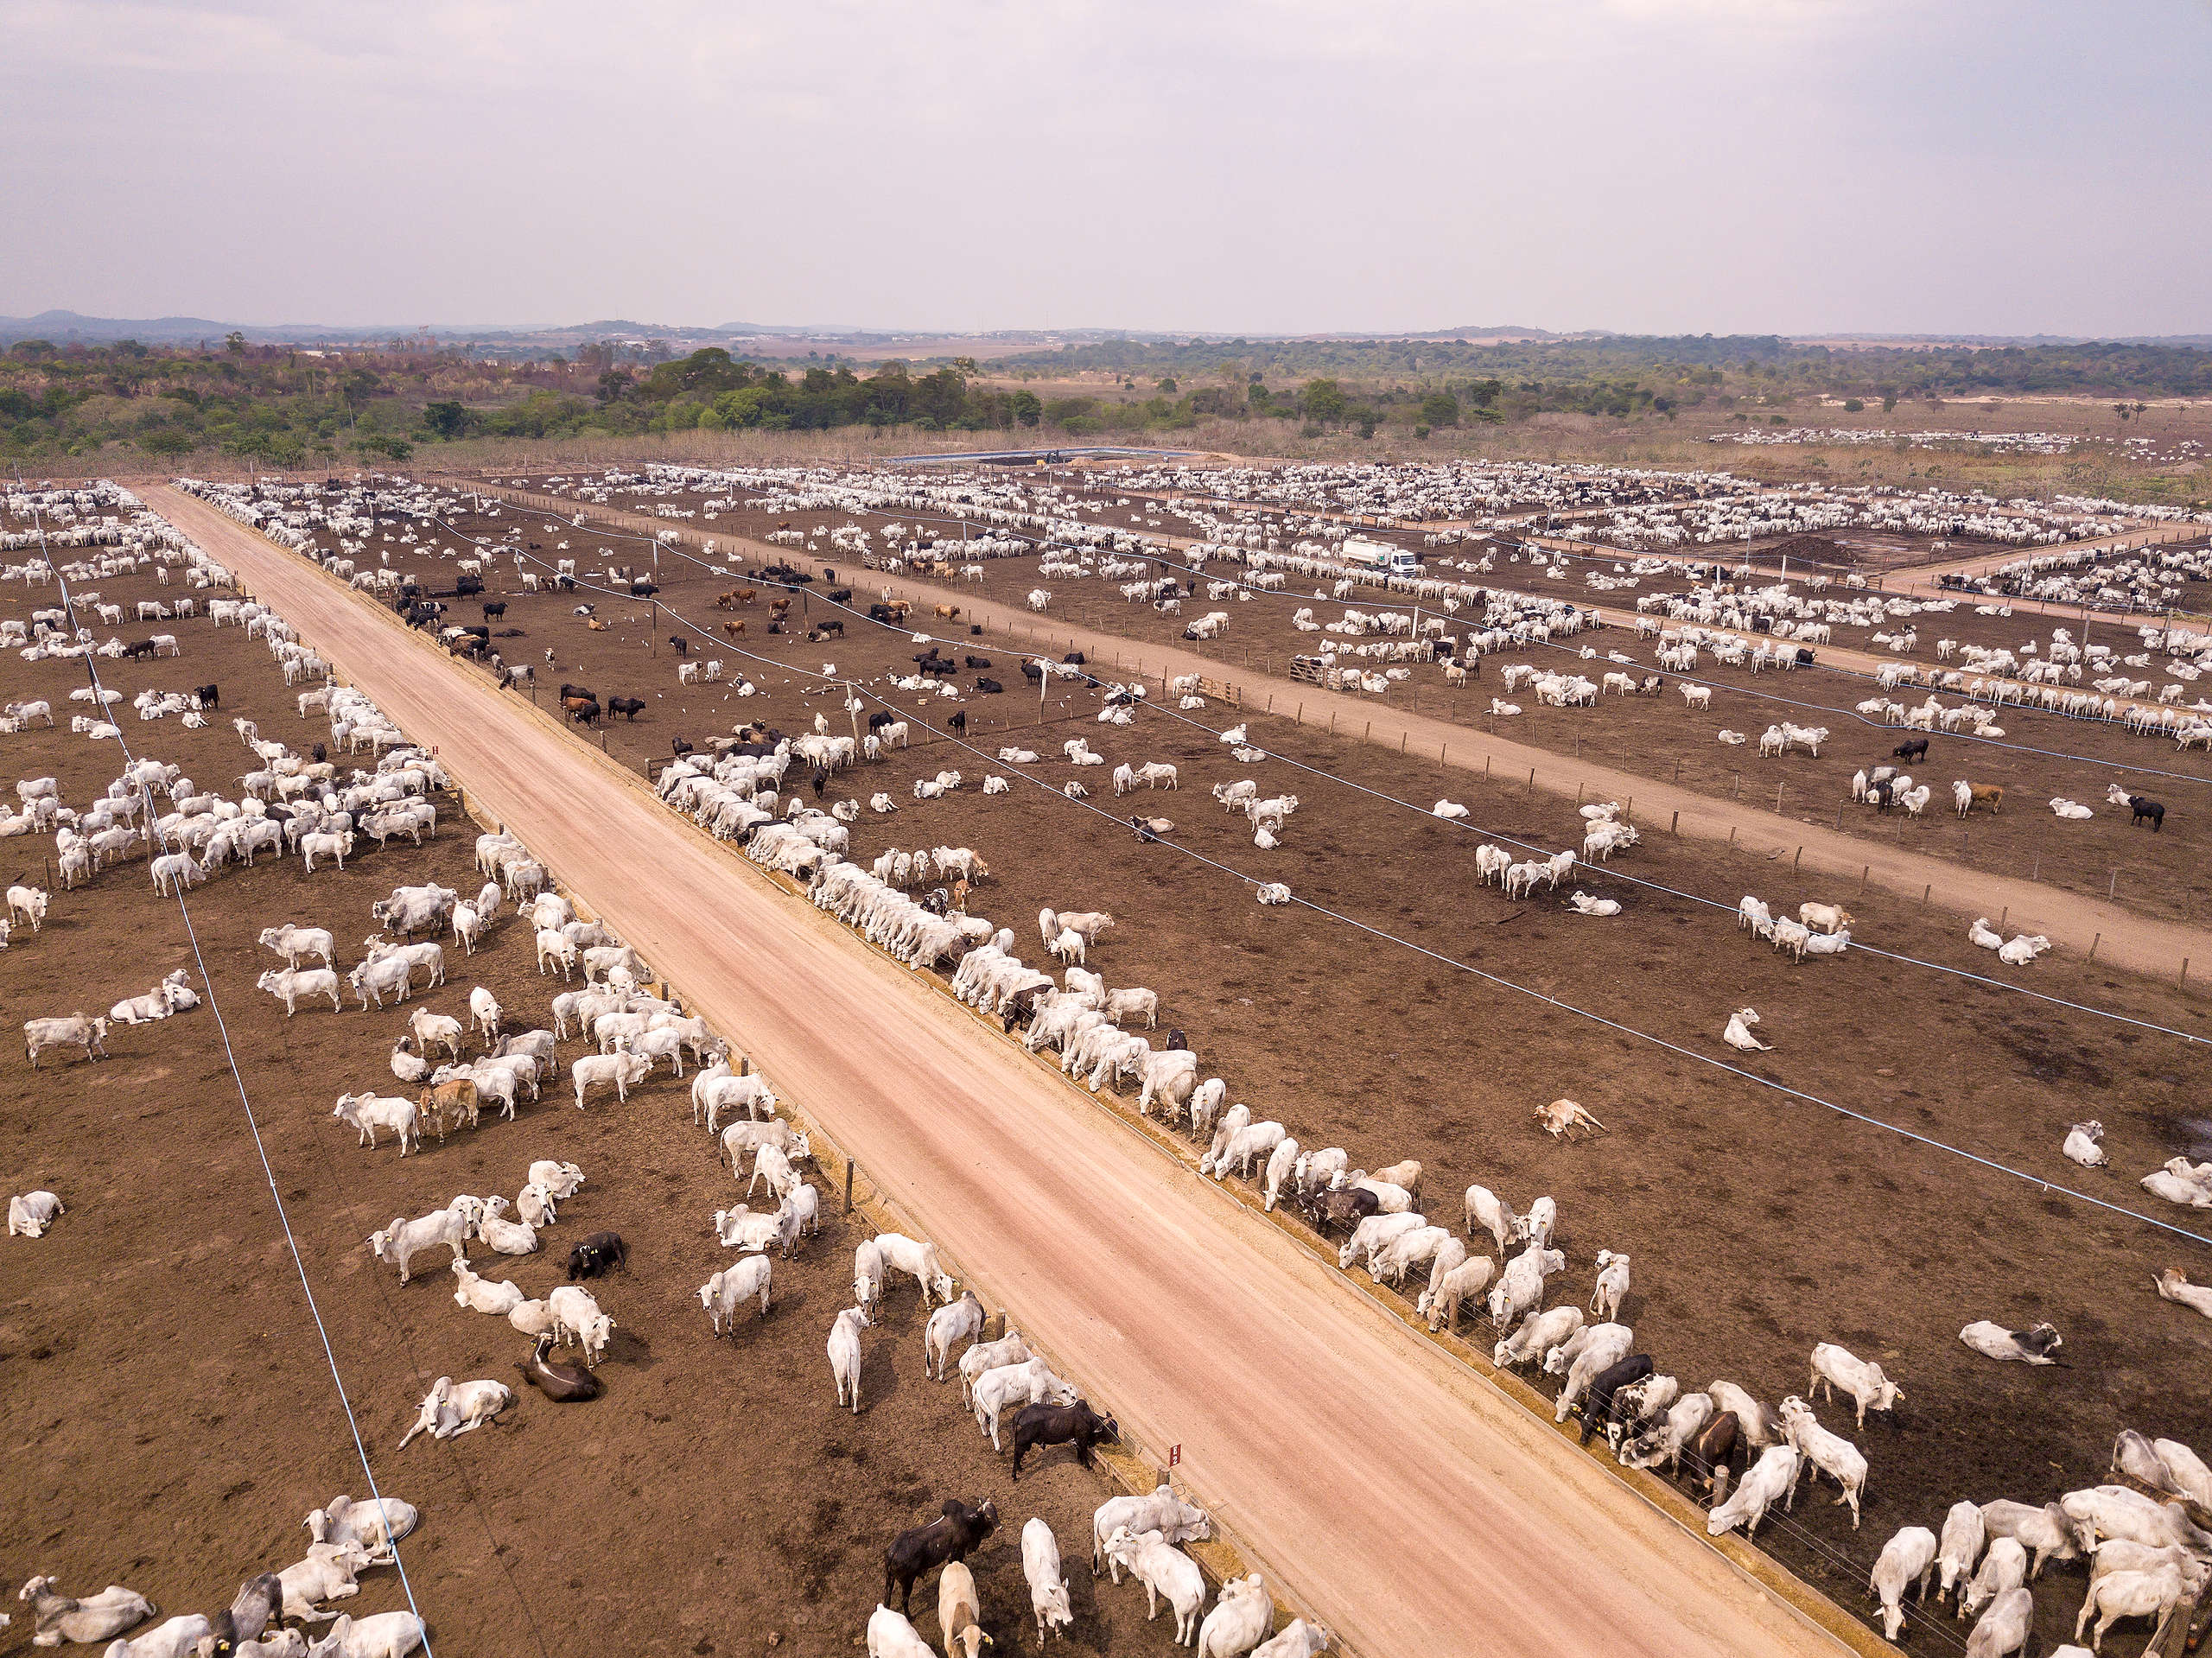 Cattle farming in the Amazon